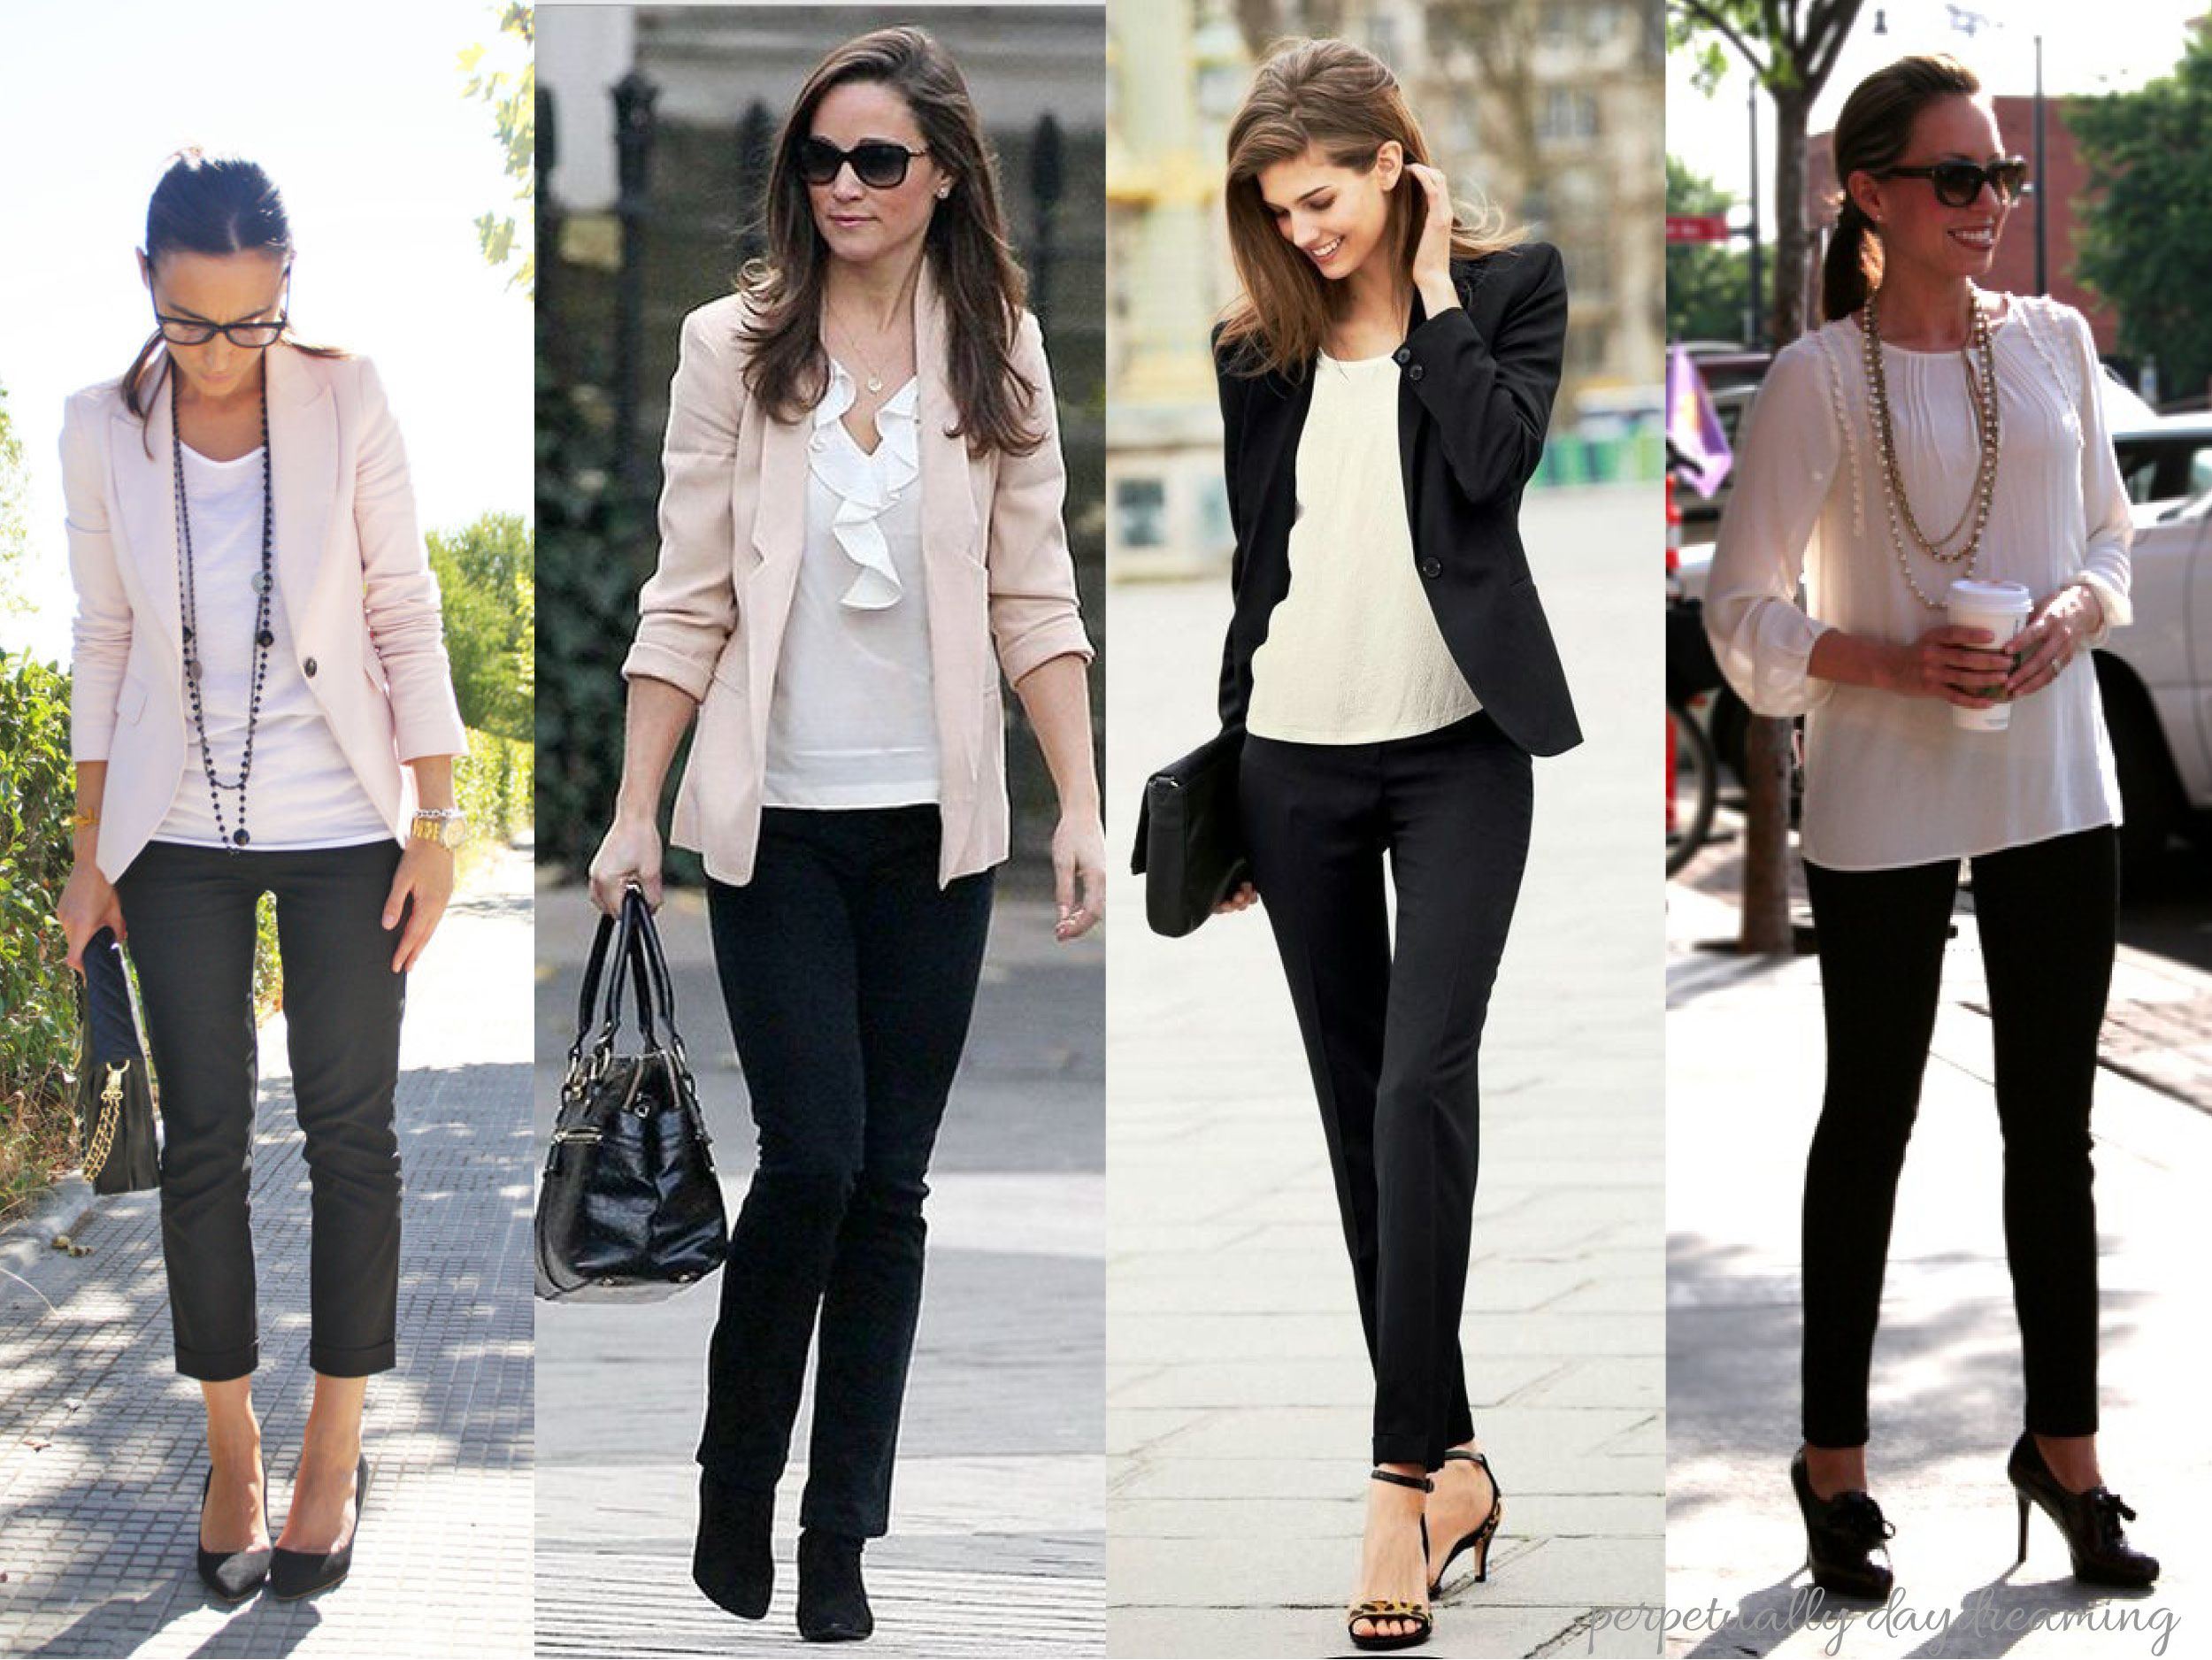 classic ladylike work outfits office style perpetually classic ladylike work outfits office style perpetually daydreaming